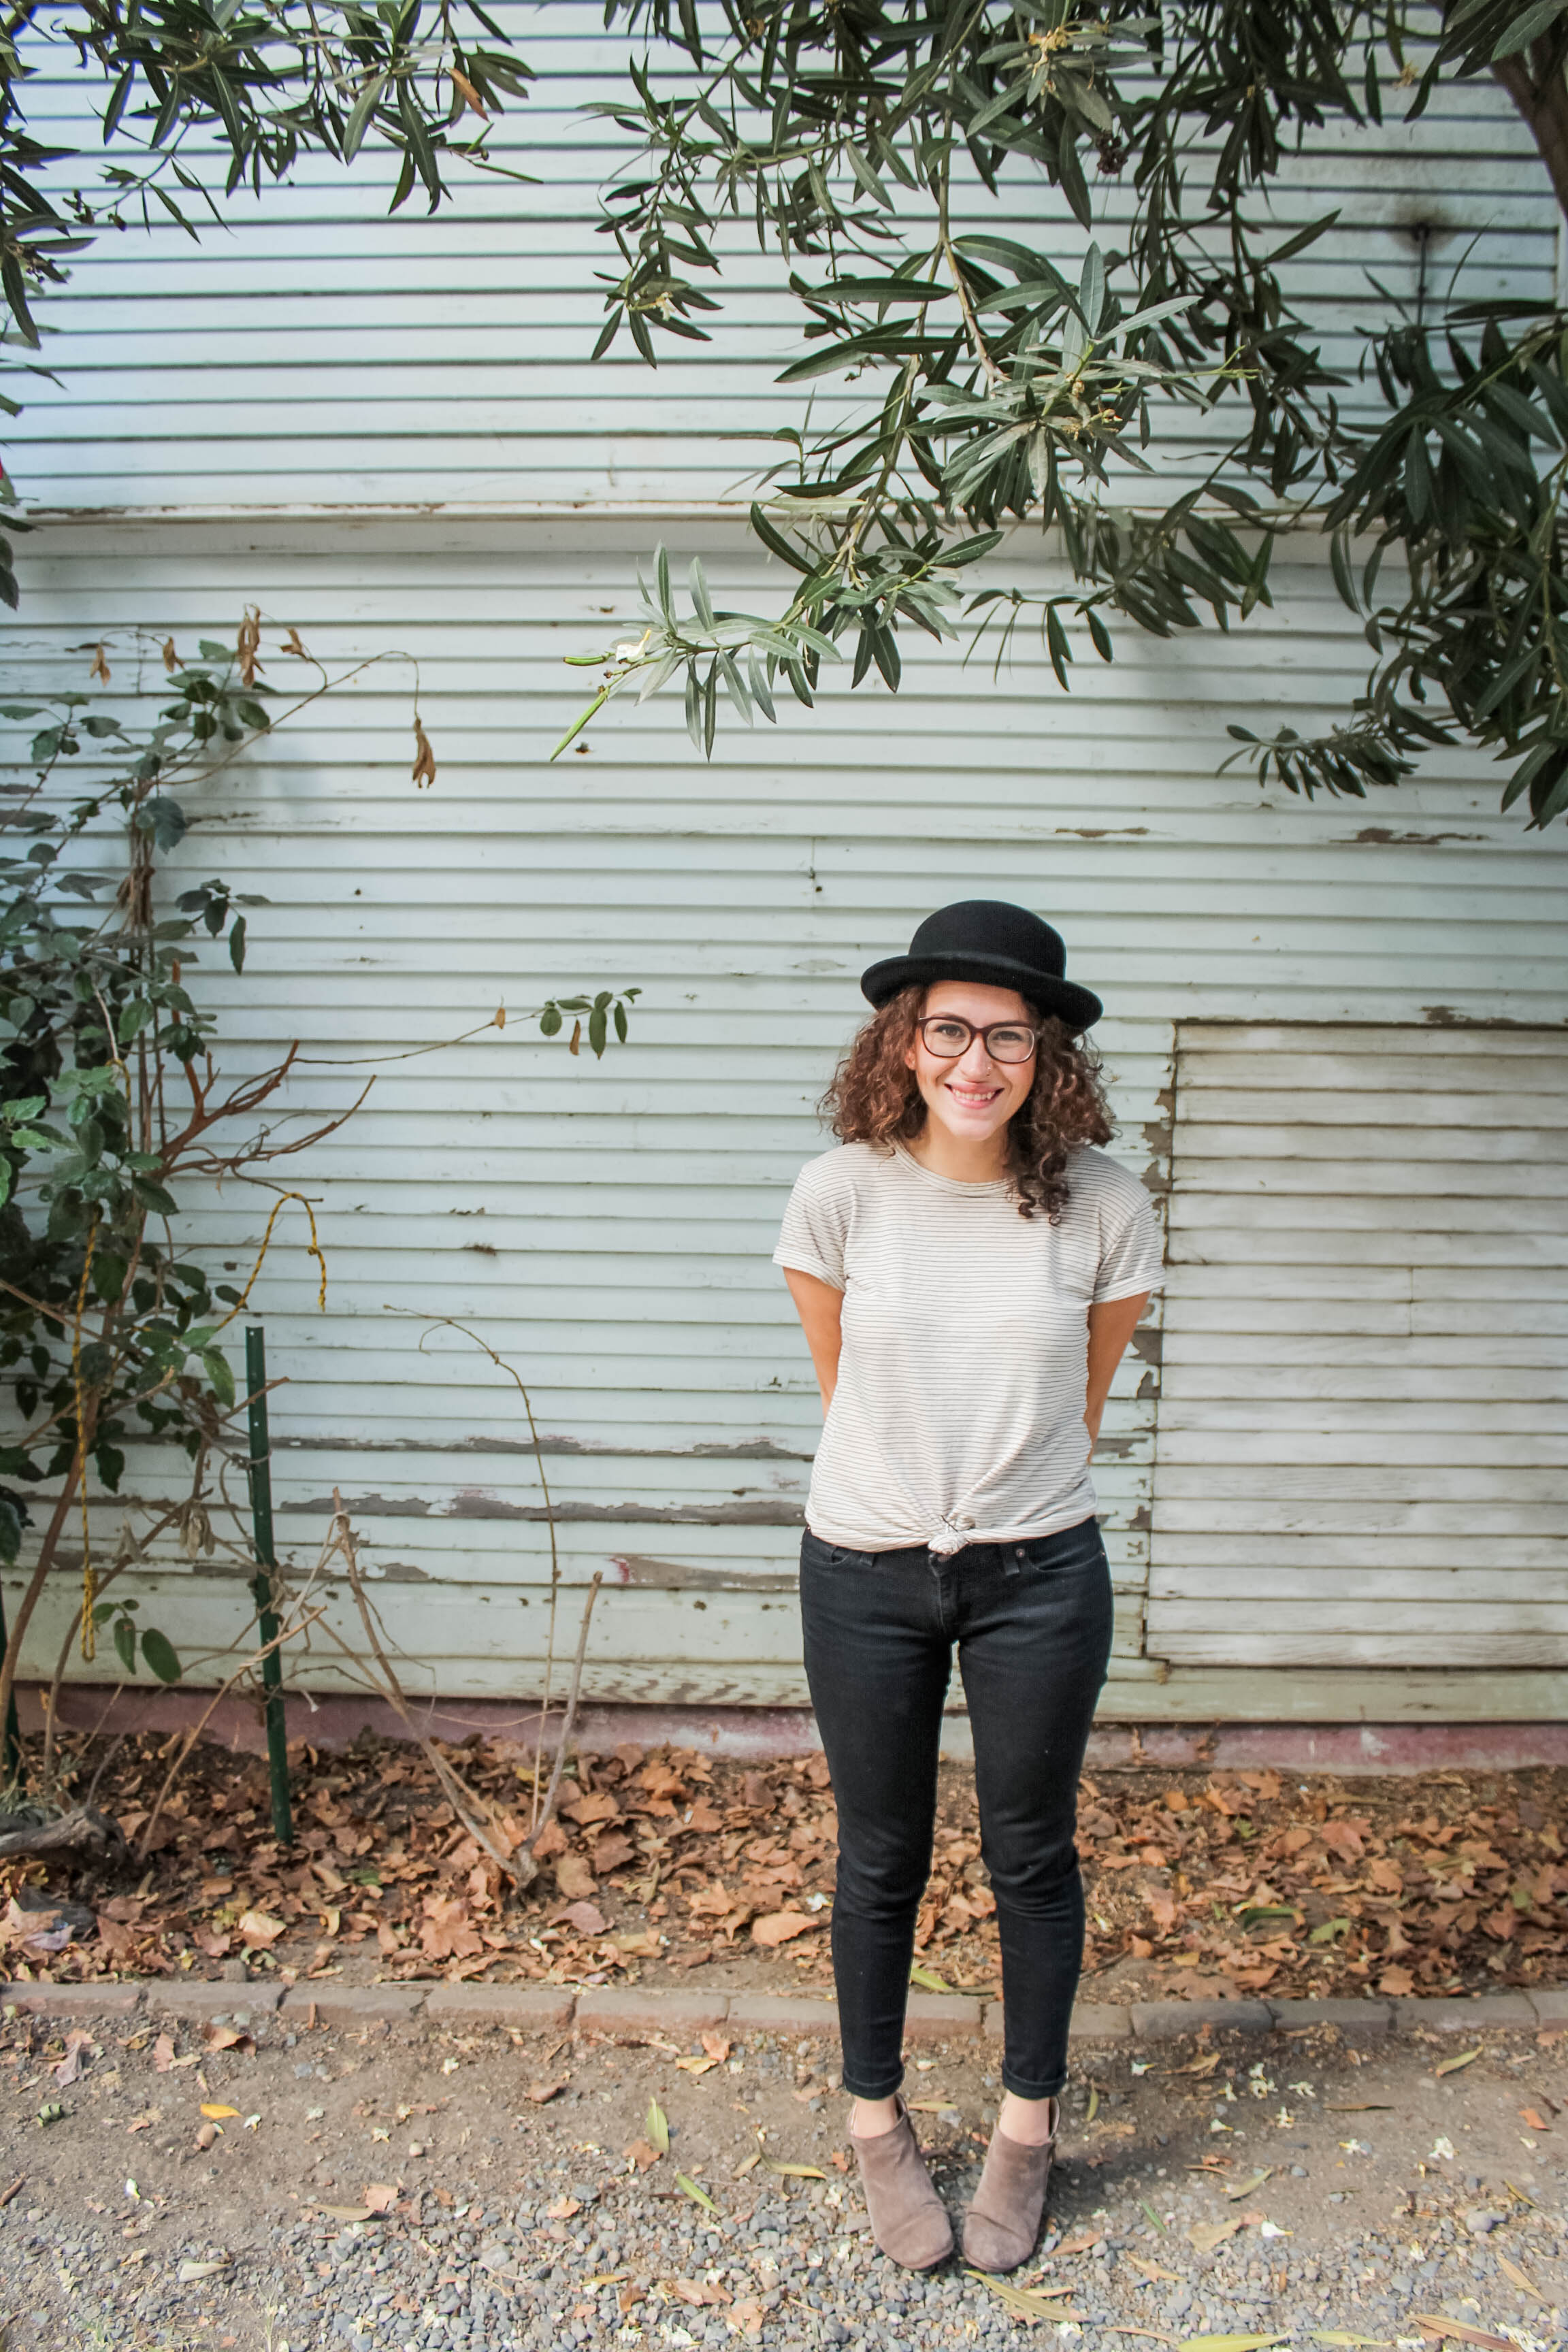 tintedgreenblog.com   causal t shirt and jeans outfit from my fall capsule wardrobe